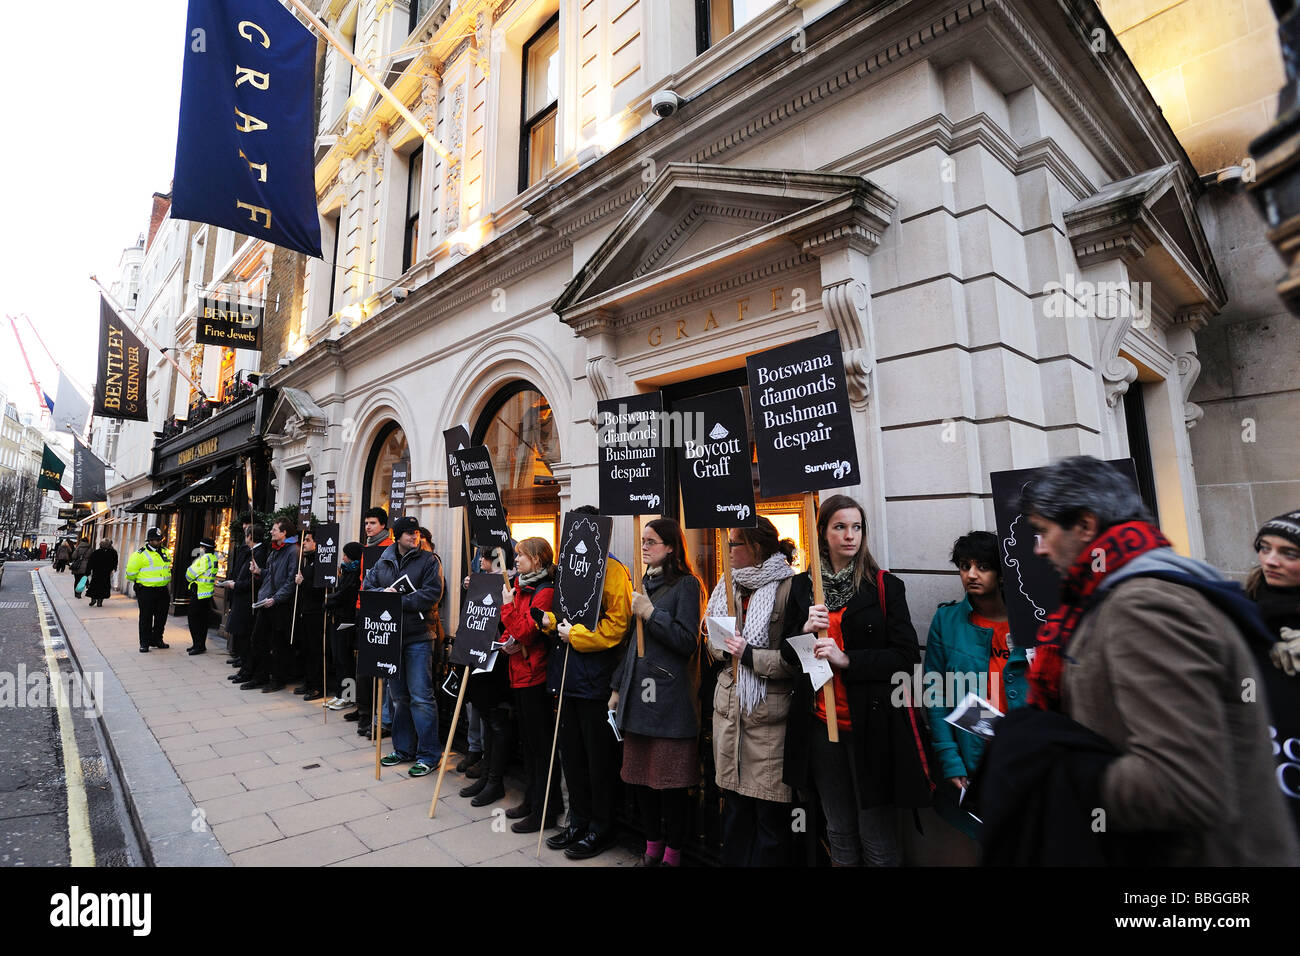 Survival International staging a protest outside the Graff shop in London's New Bond Street. - Stock Image